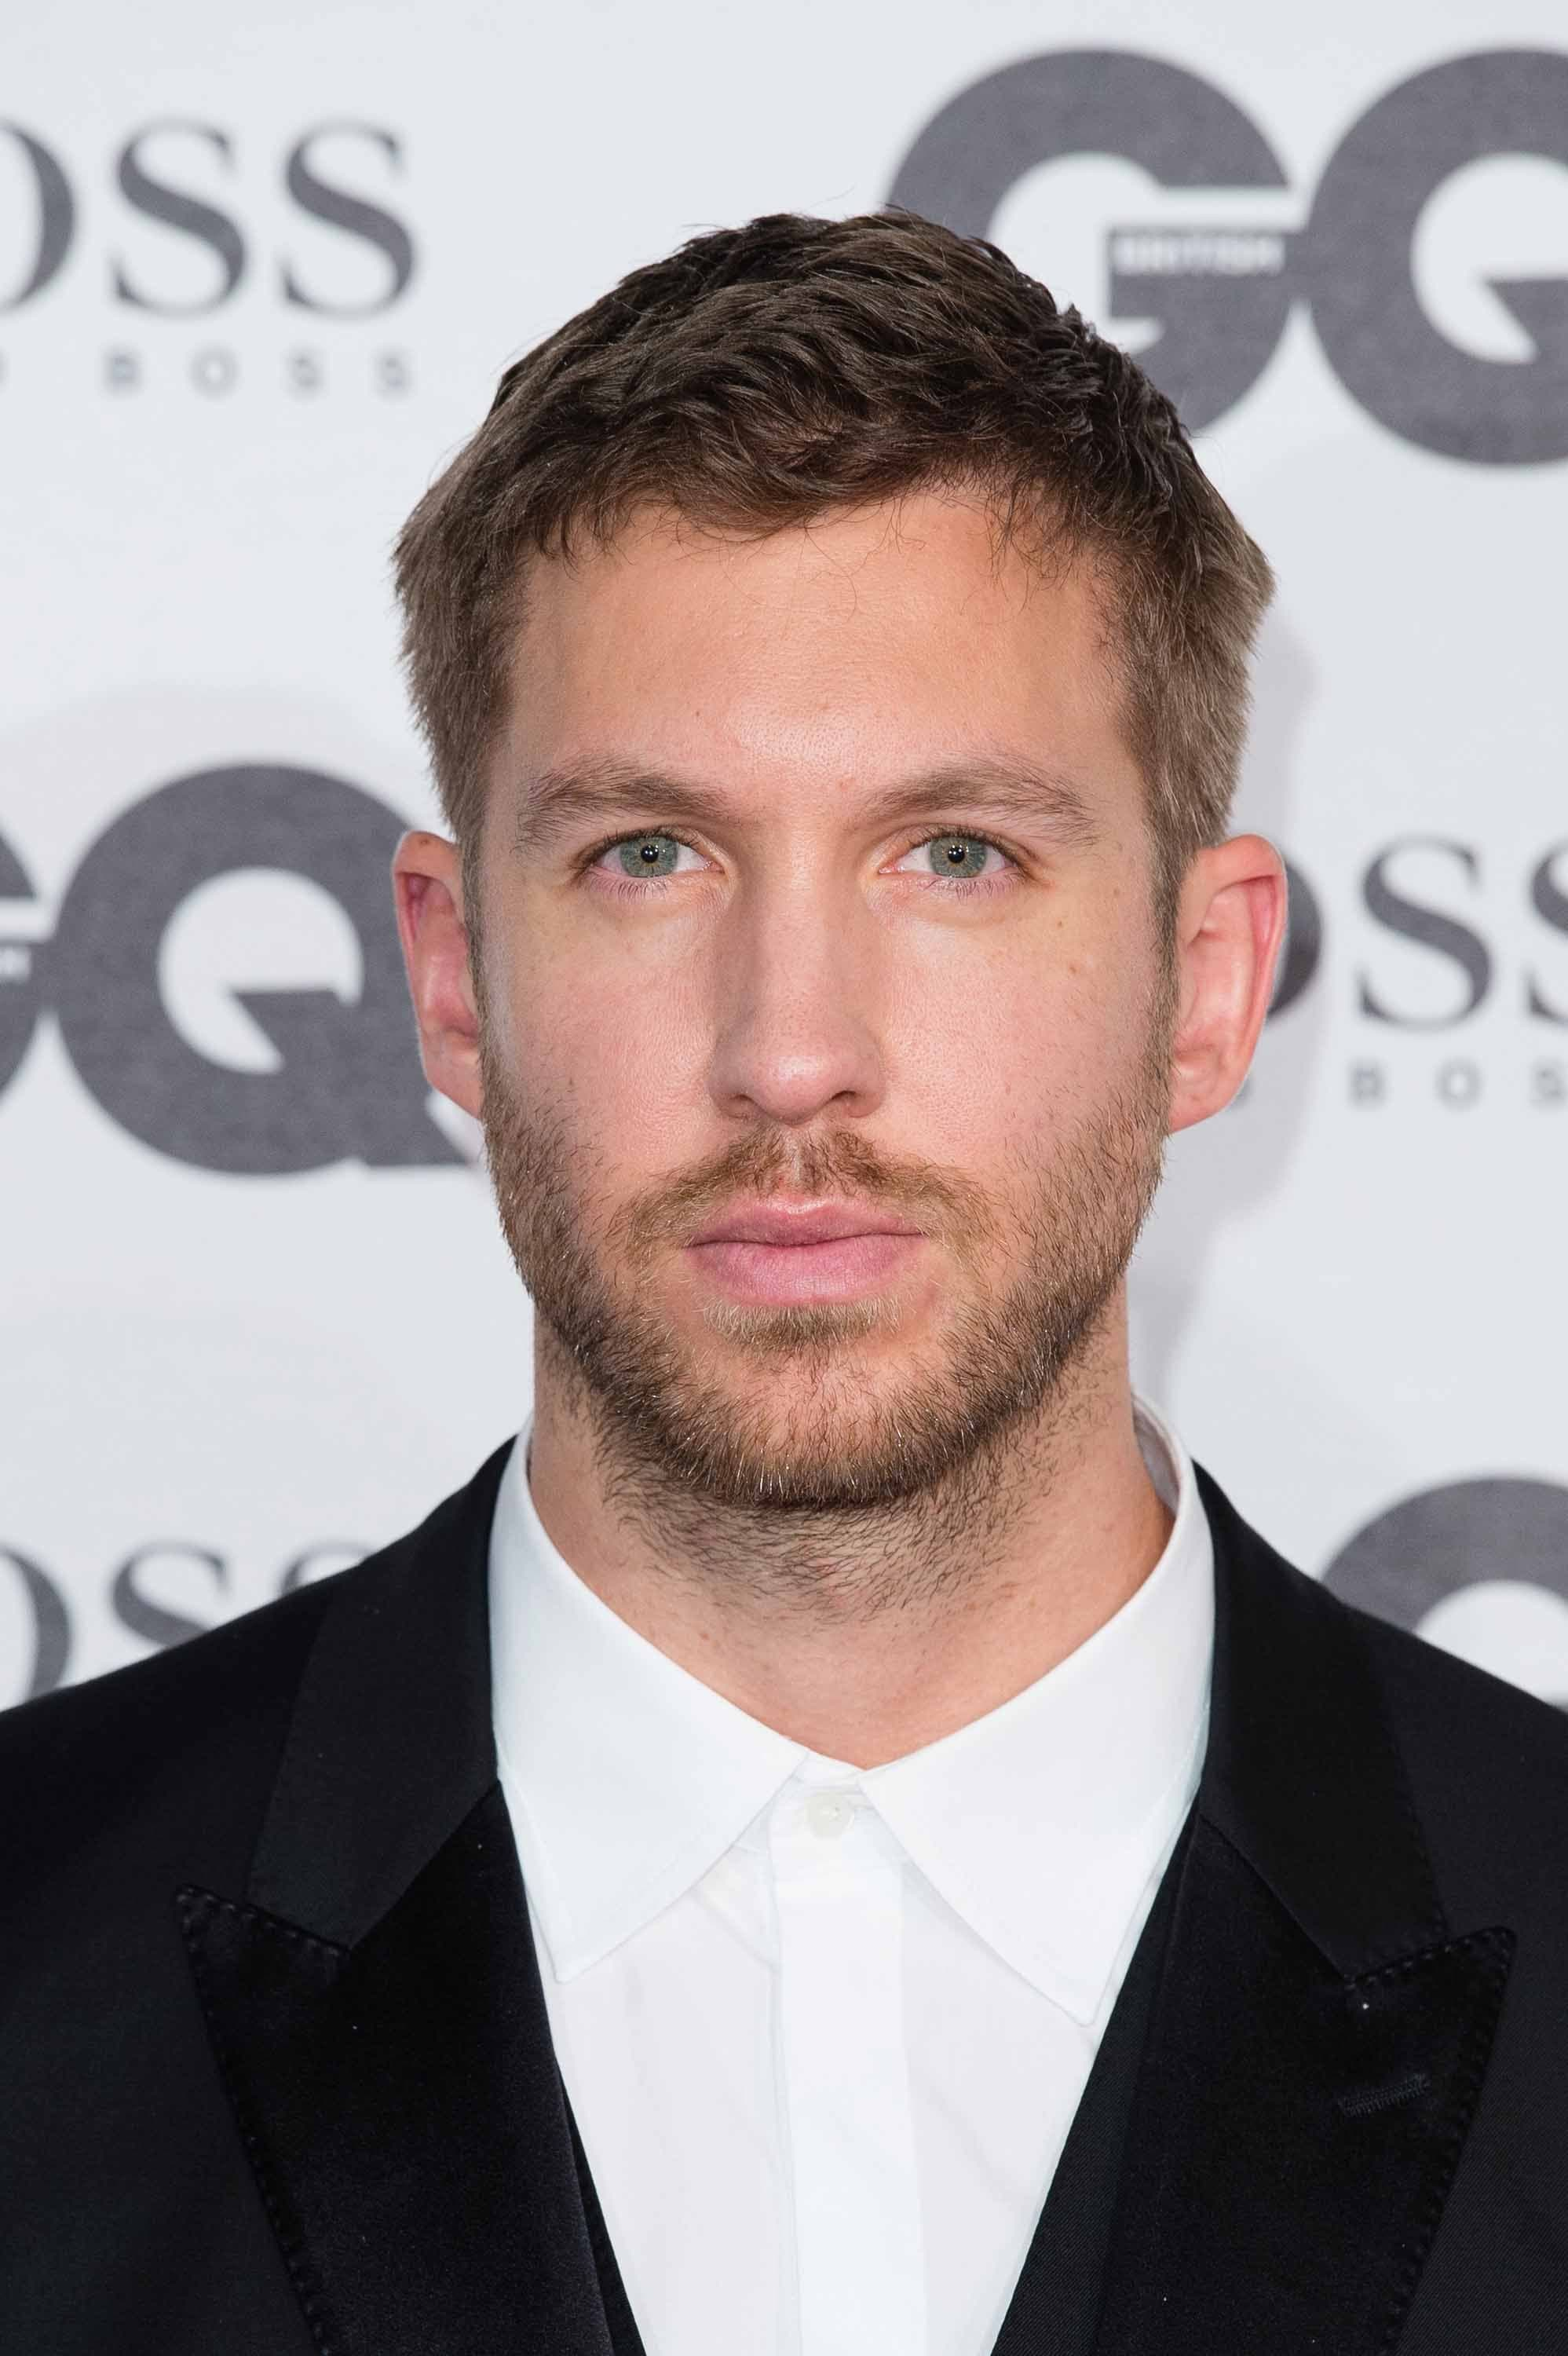 mens hair Calvin Harris GQ awards 2016